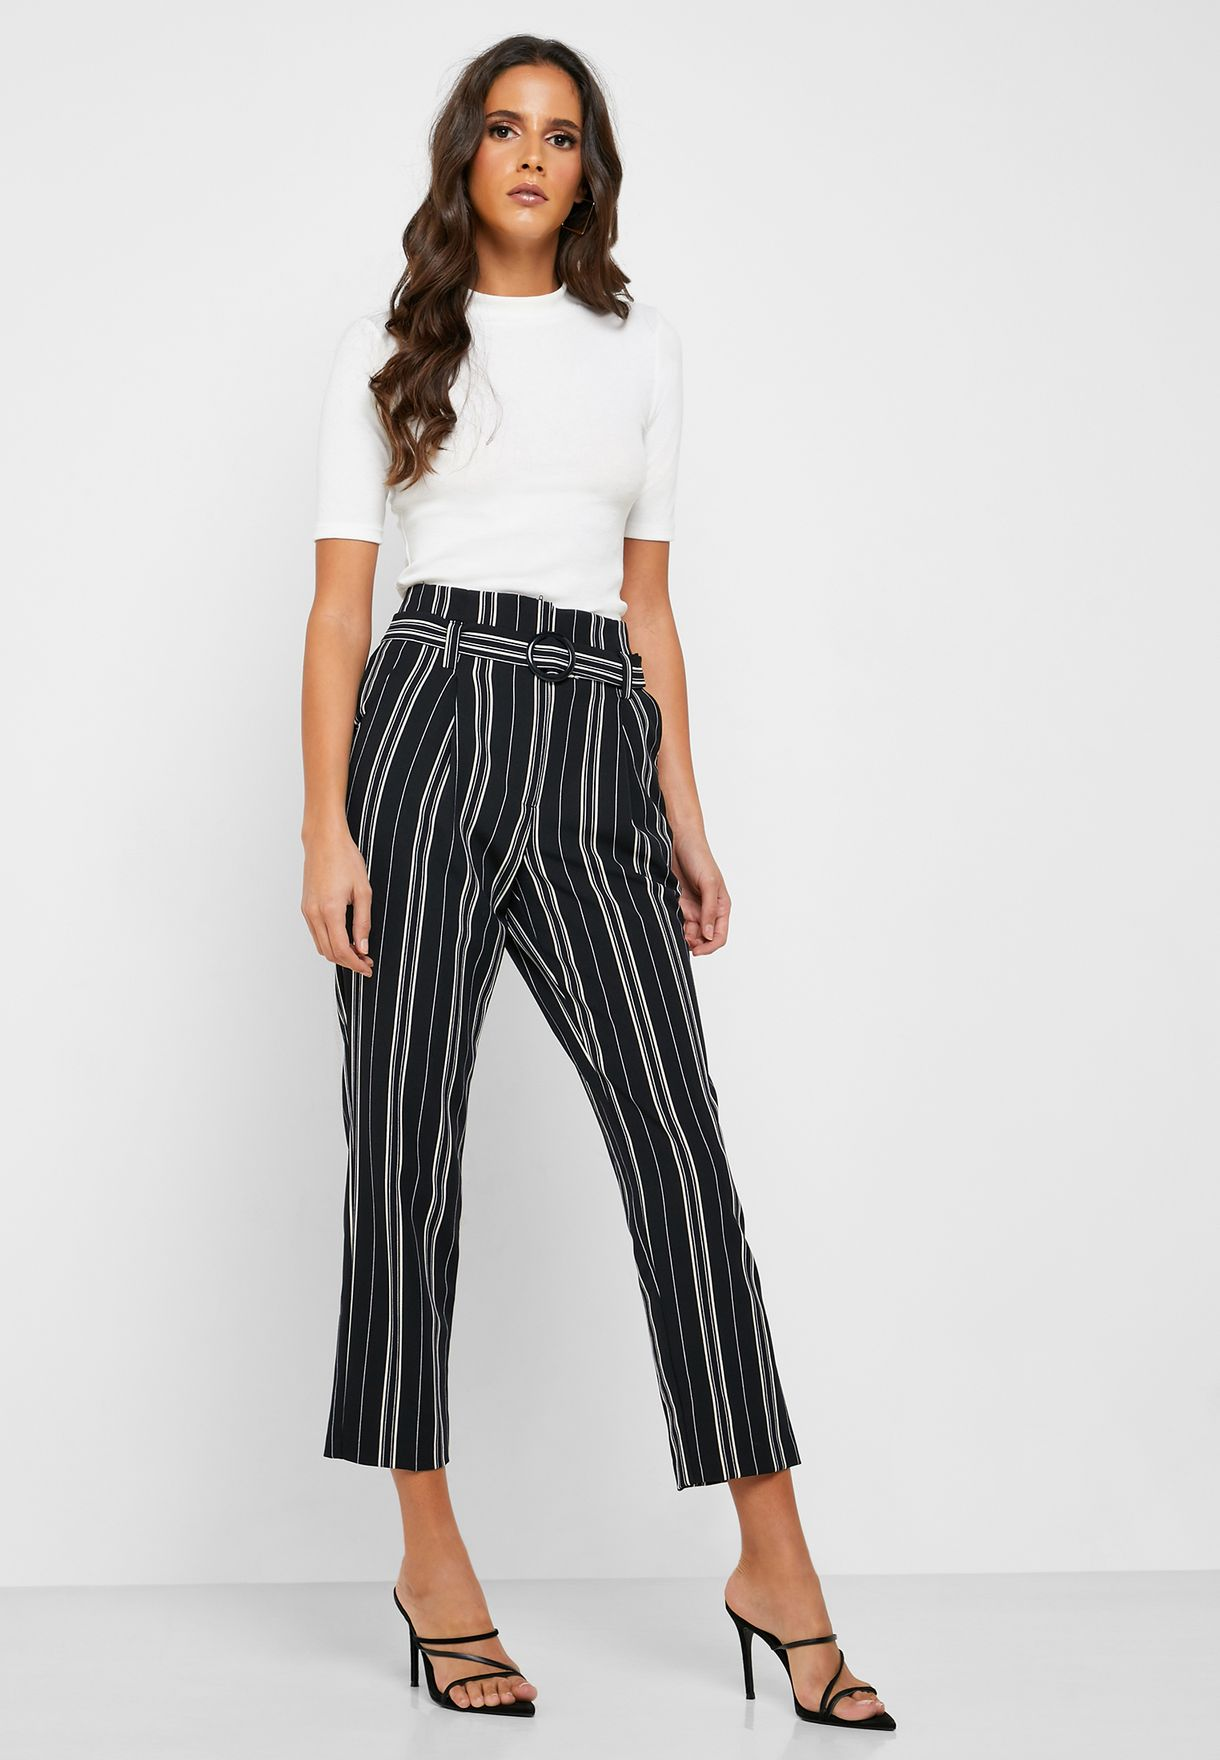 Buckle Detail Striped Pants